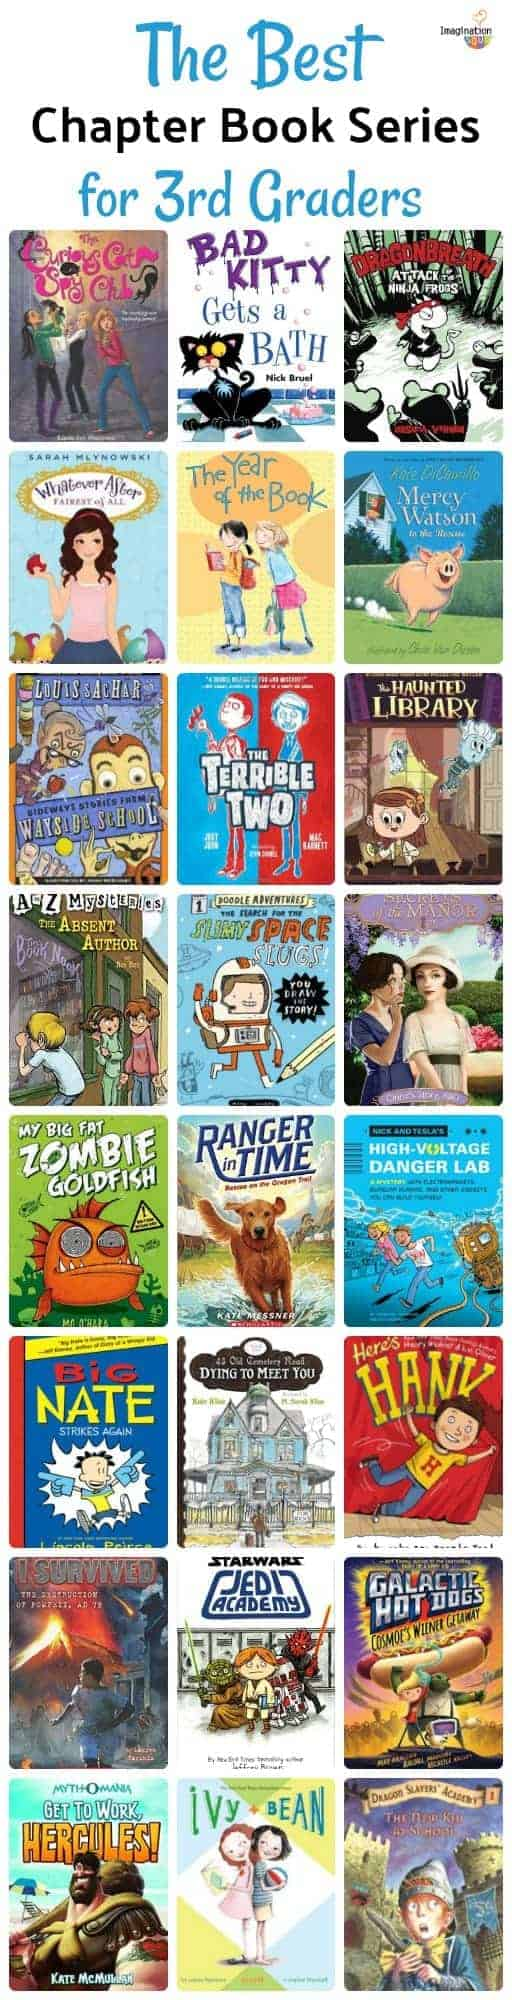 chapter book series that 3rd graders (8-year-olds) LOVE!